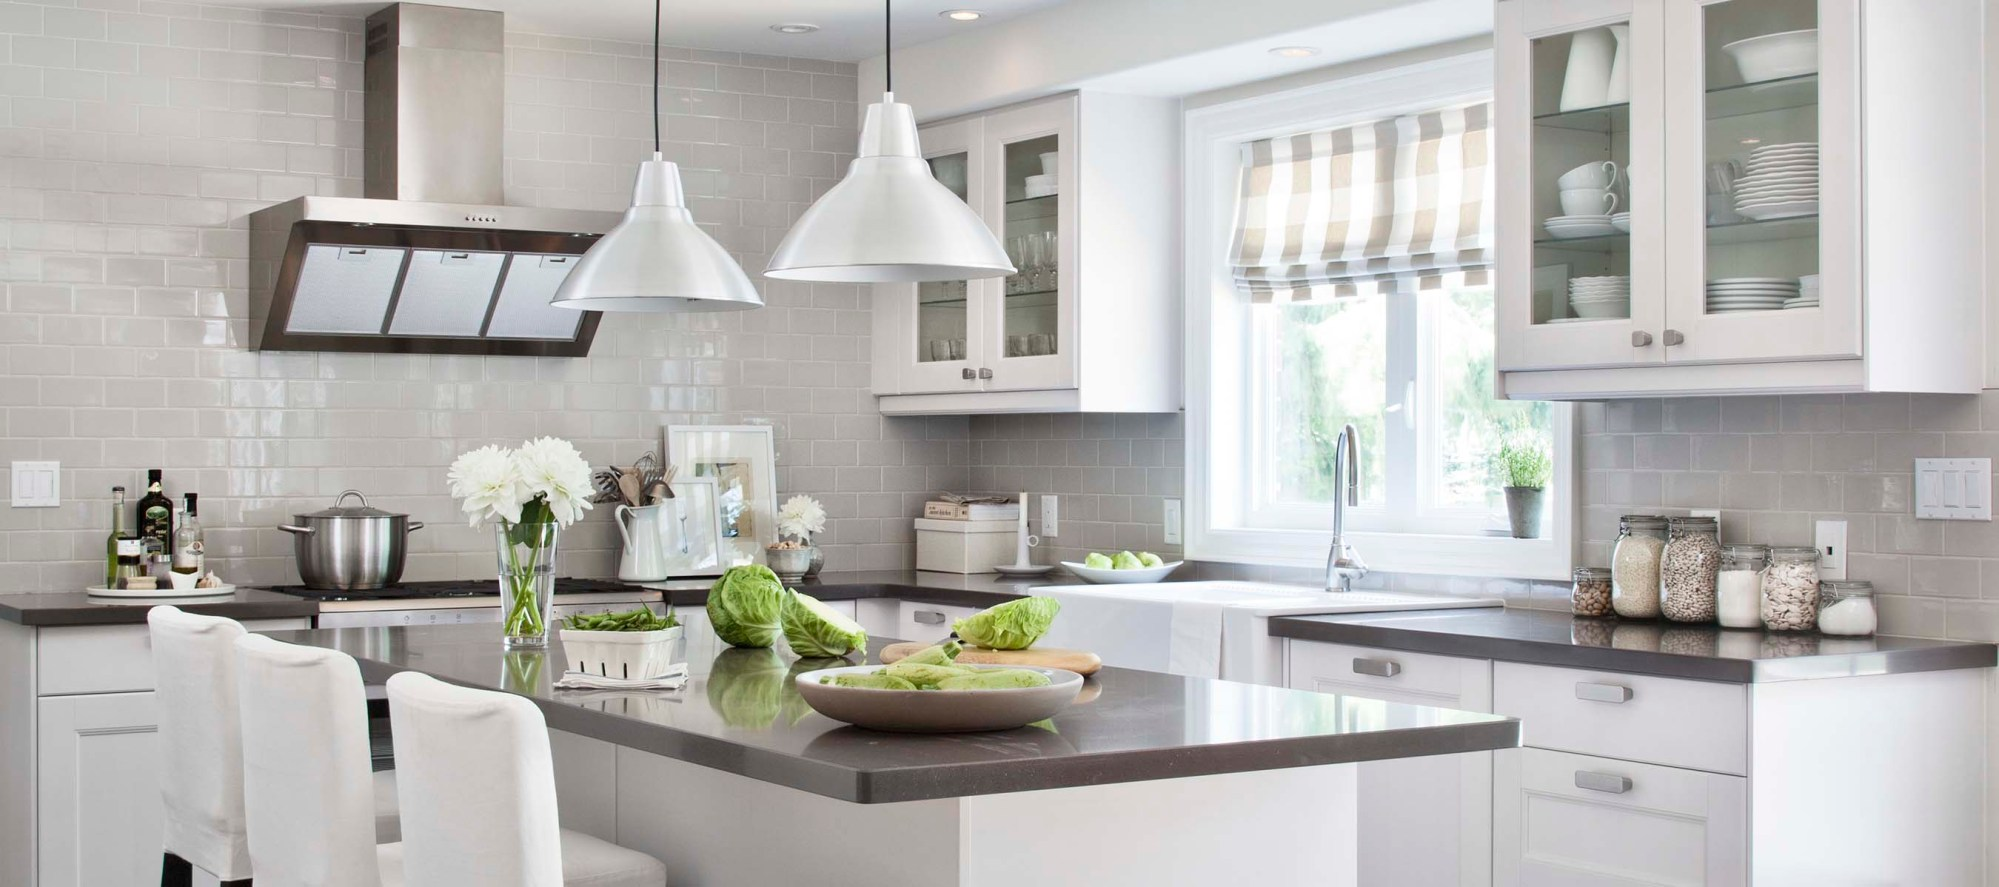 hight resolution of kitchen electrical design